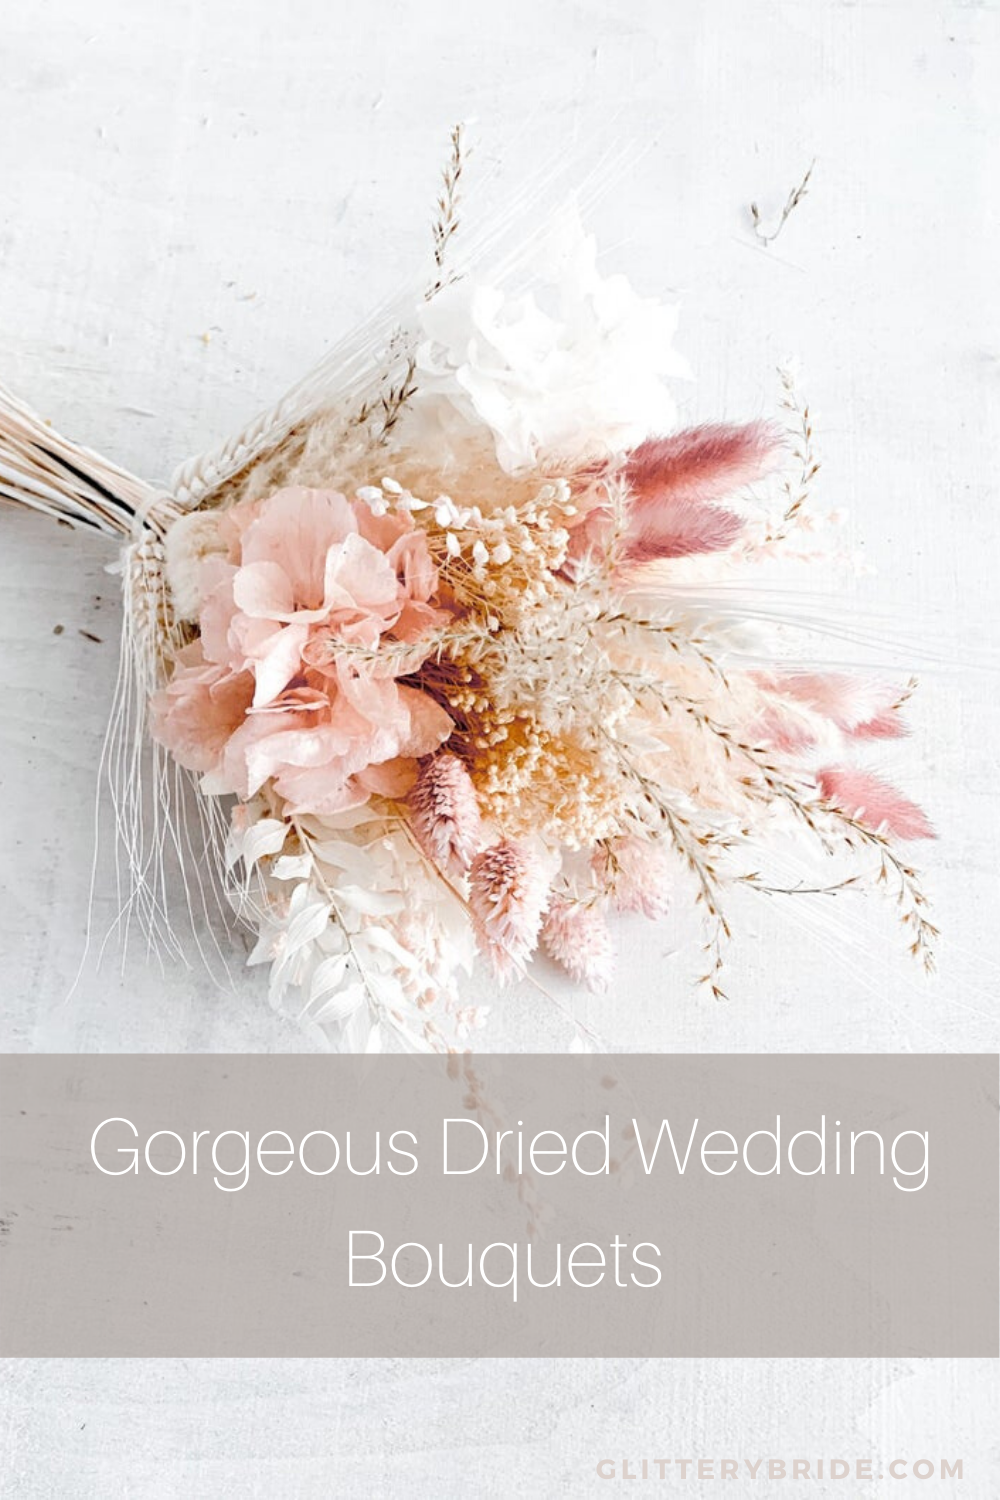 Dried Wedding Bouquets We Love Glittery Bride